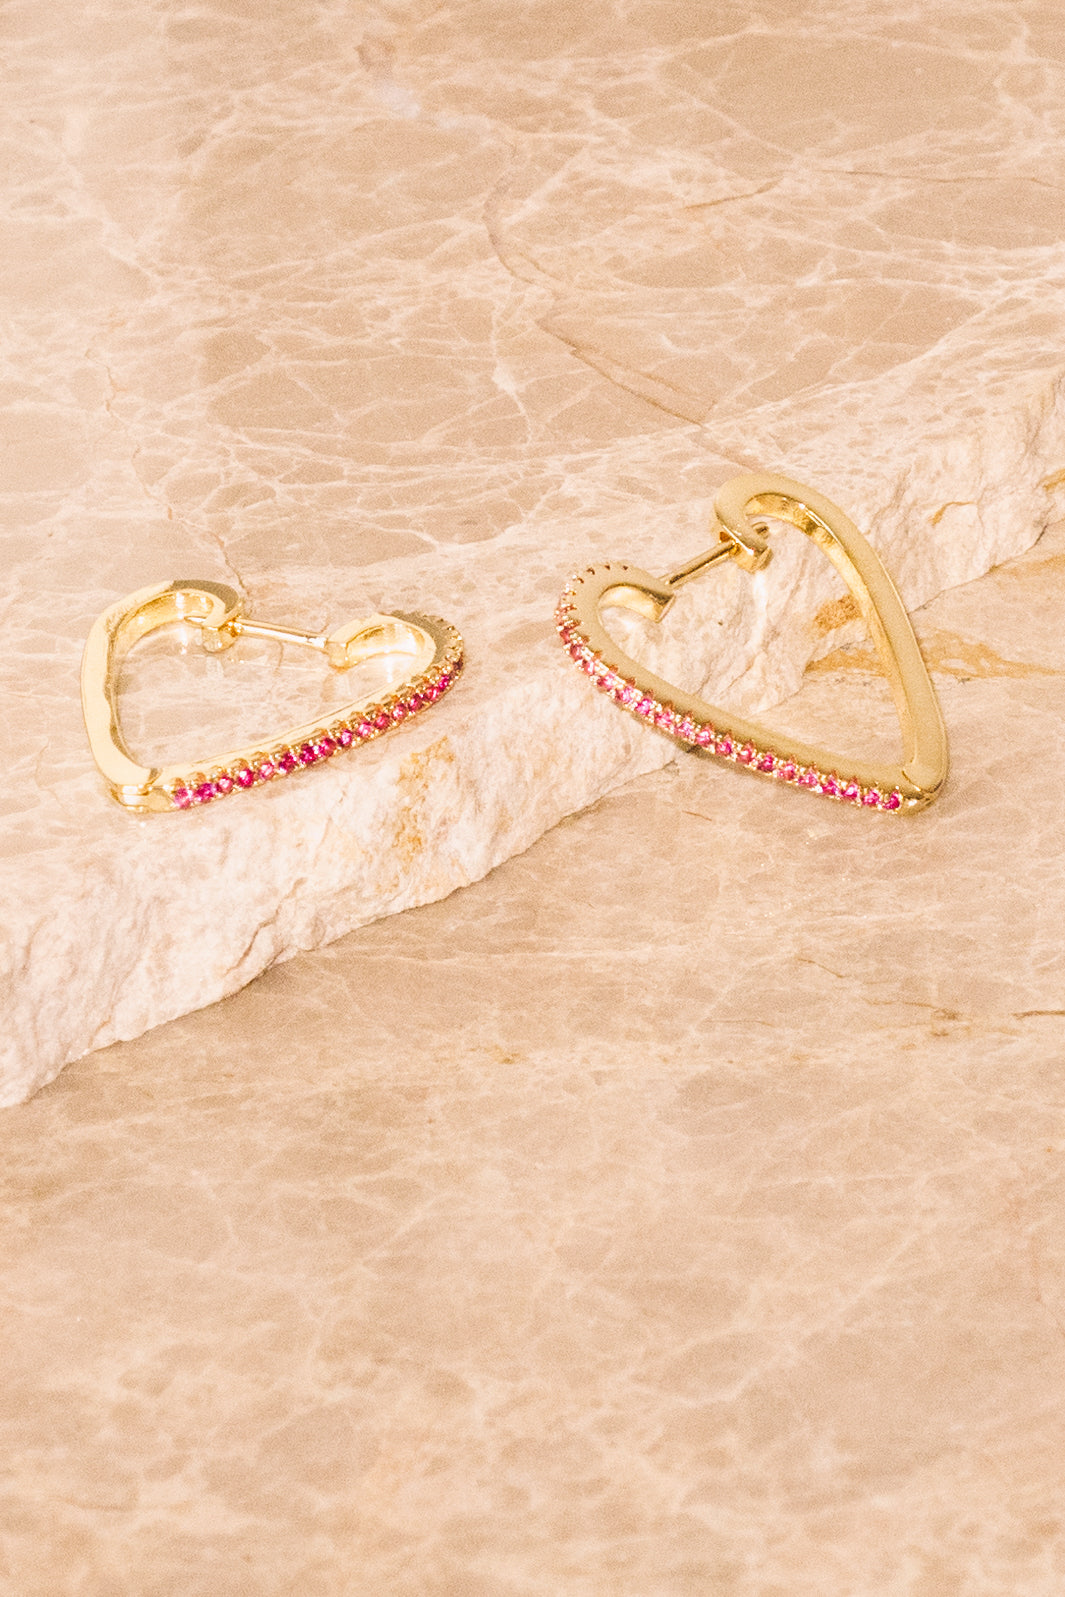 Heart Hoop Earrings | Ruby Crystal | 18k Gold Plating | Janna Conner